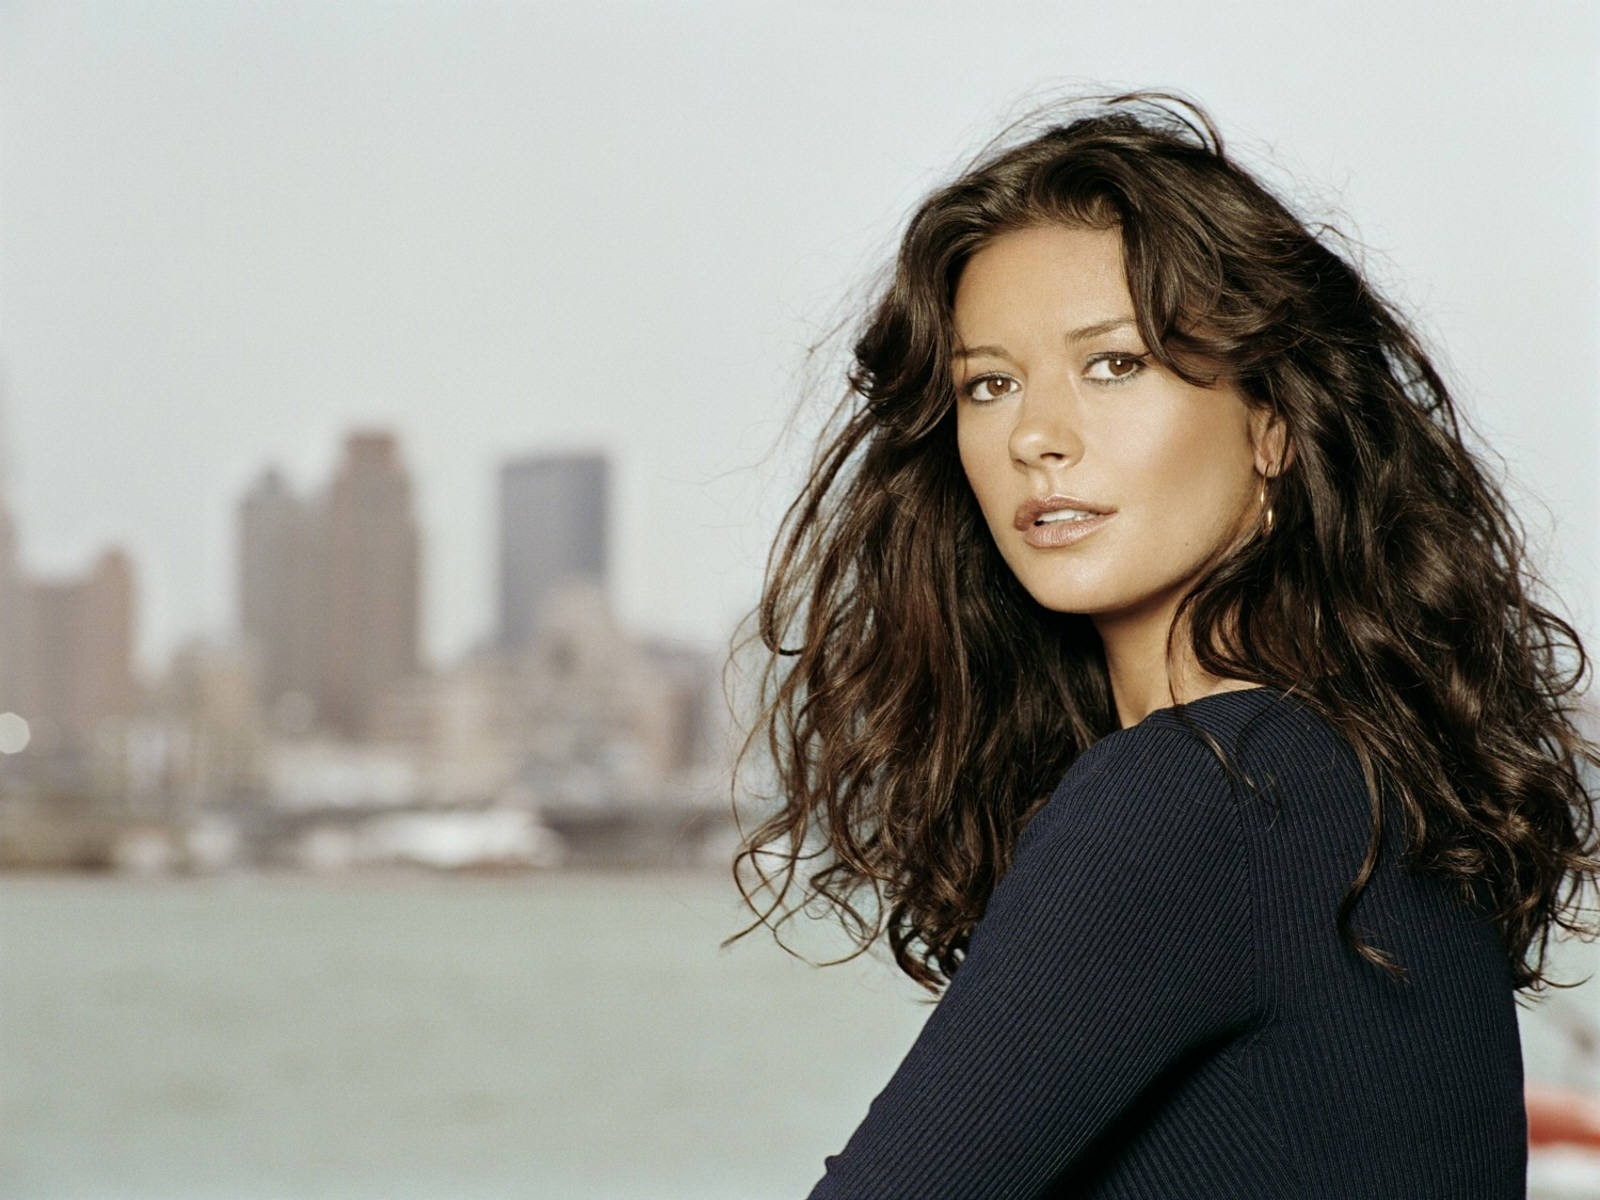 18 - Wallpaper di Catherine Zeta-Jones